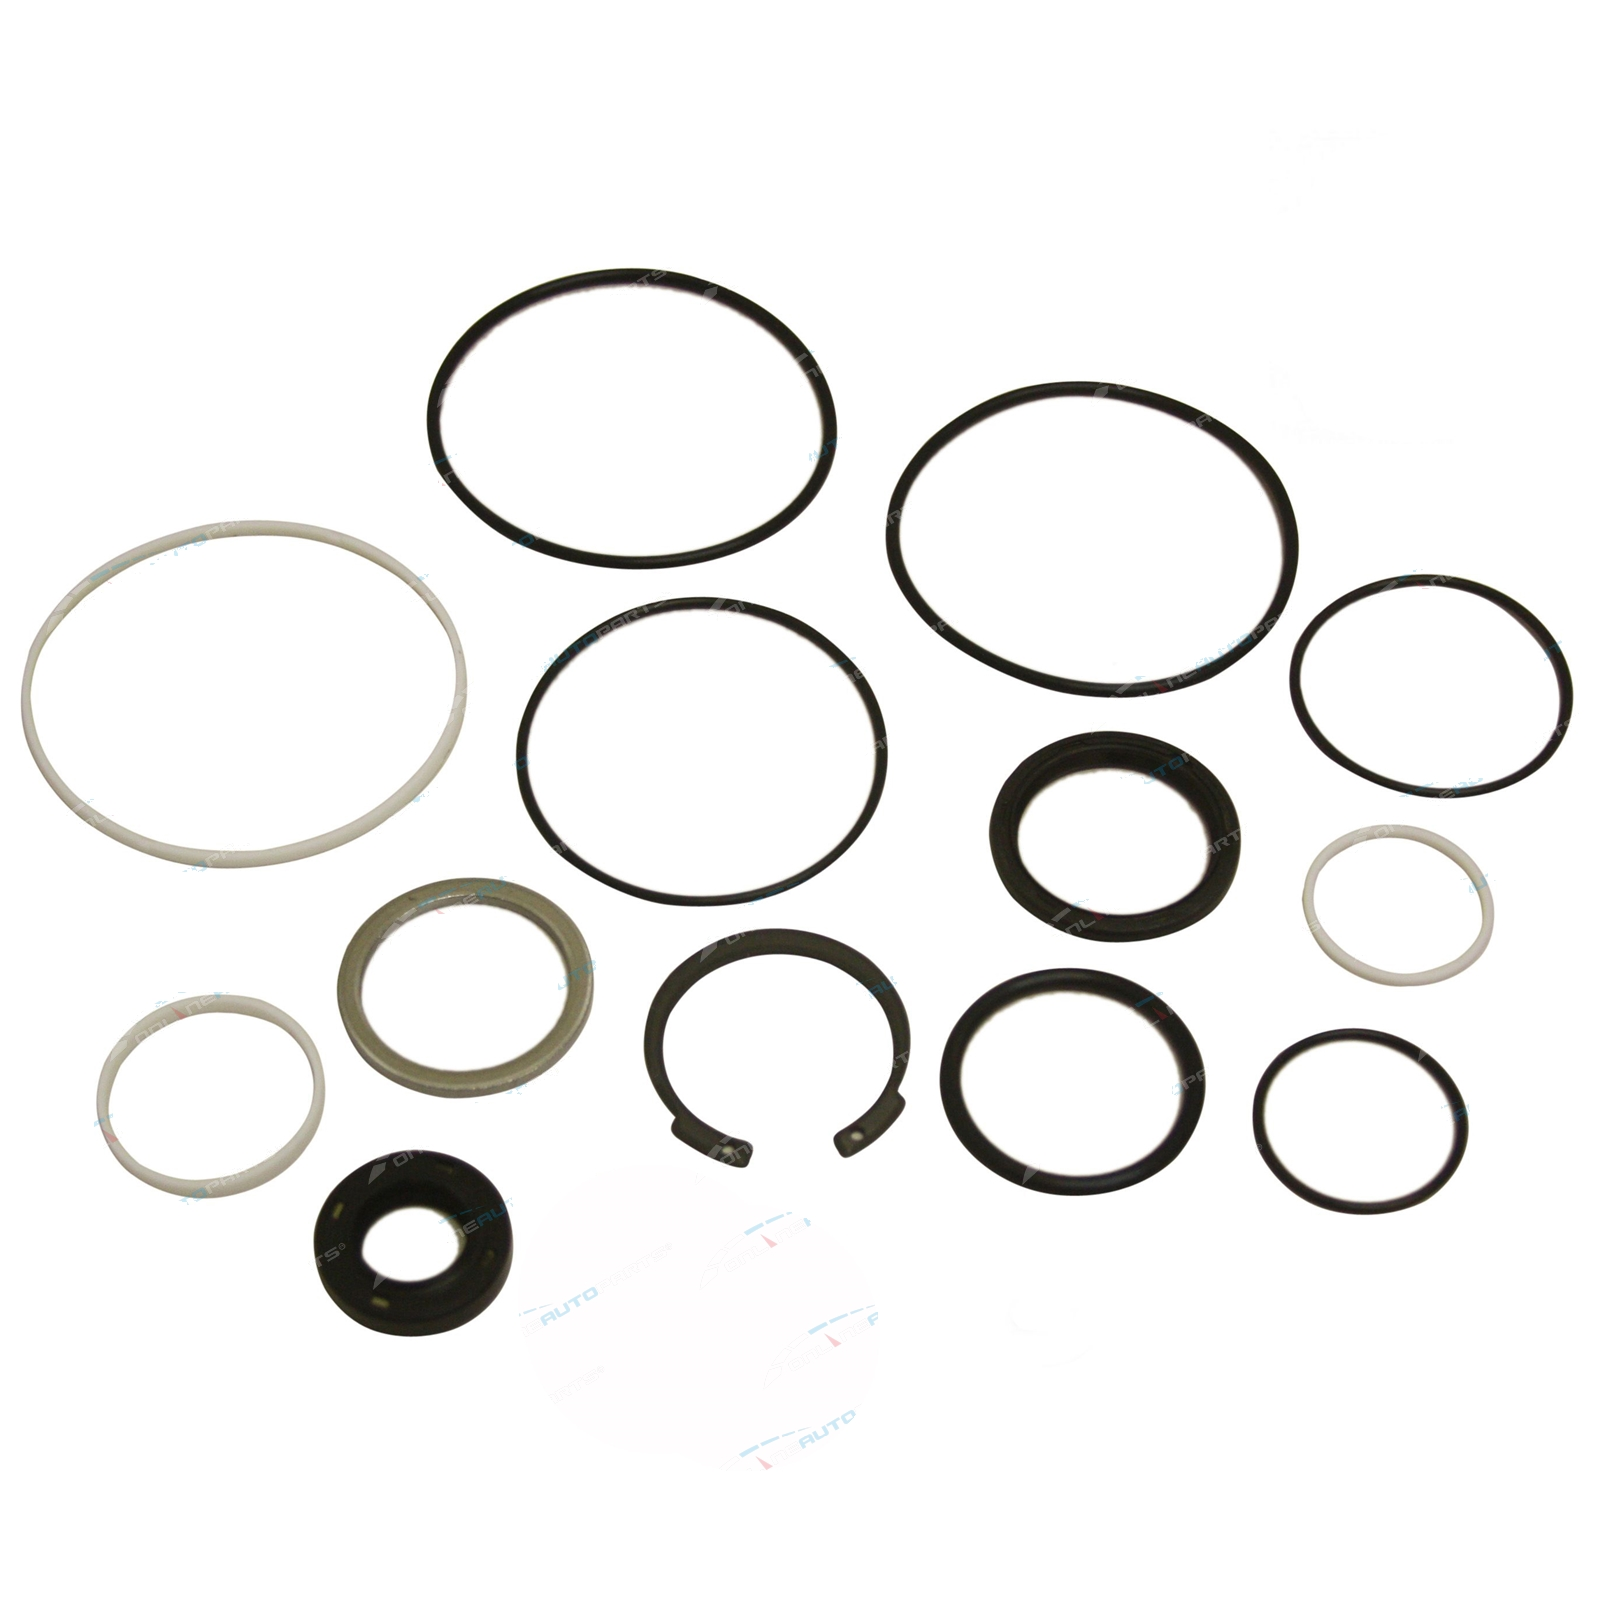 Power Steering Box Seal Kit Power Steering Repair Kit Japanese OEM Replacement